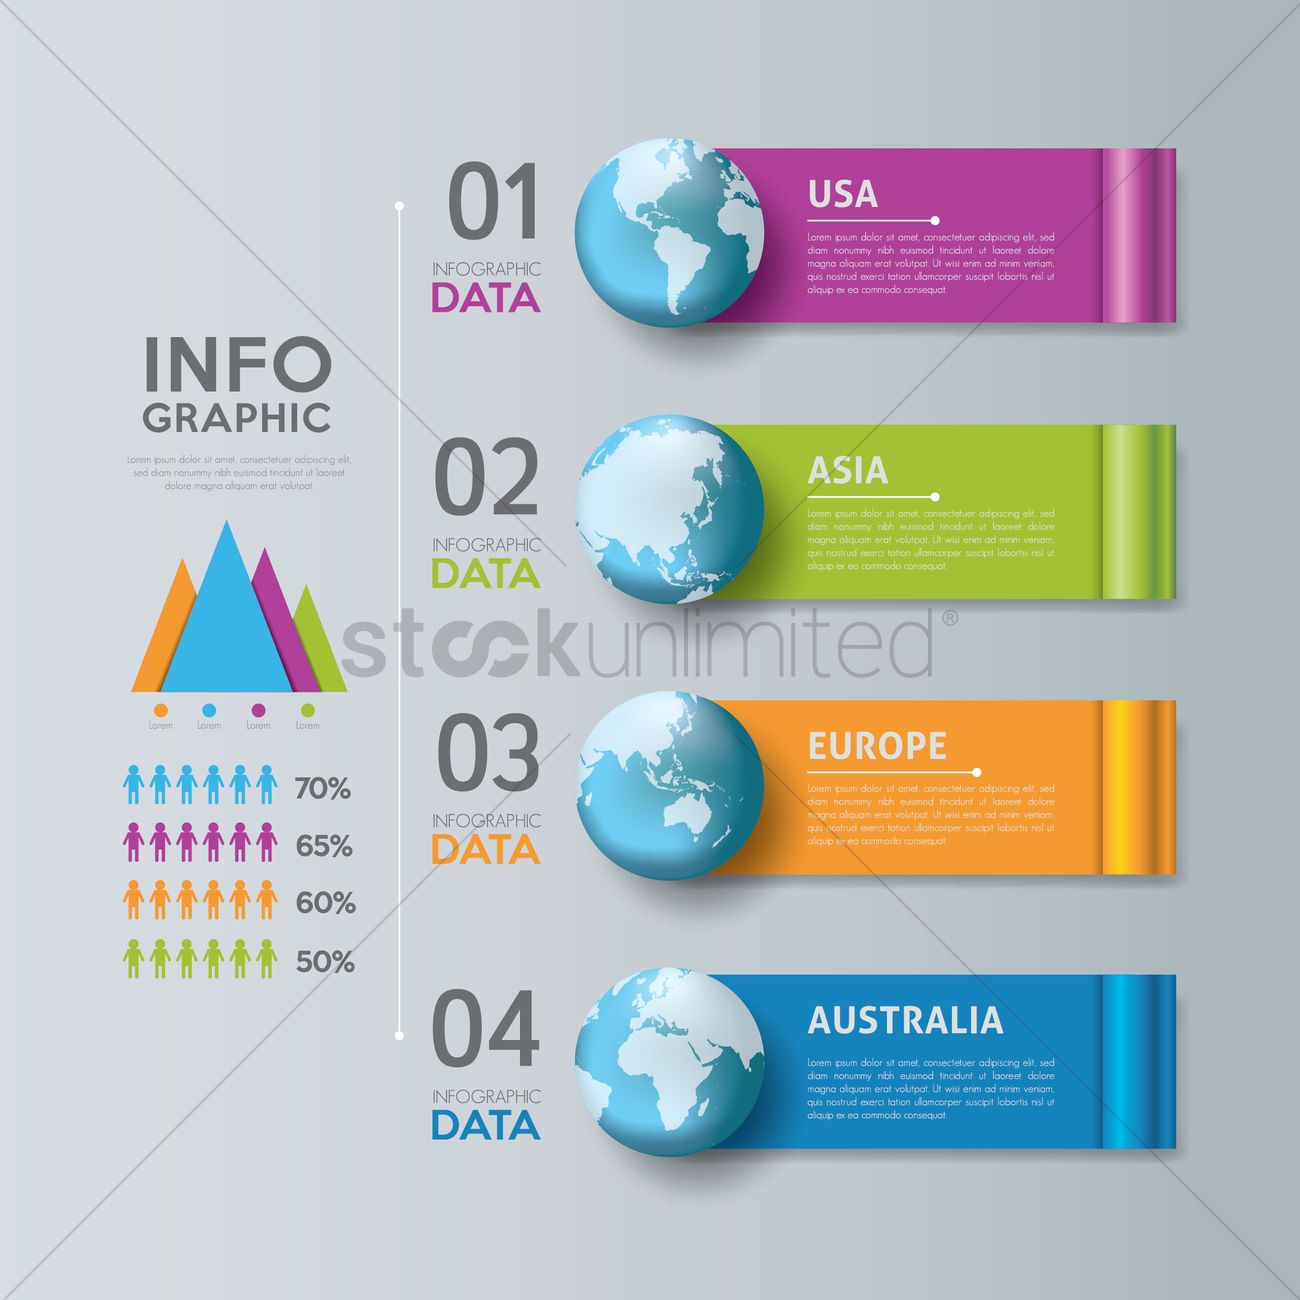 Continents infographic background Vector Image - 1789696 ...